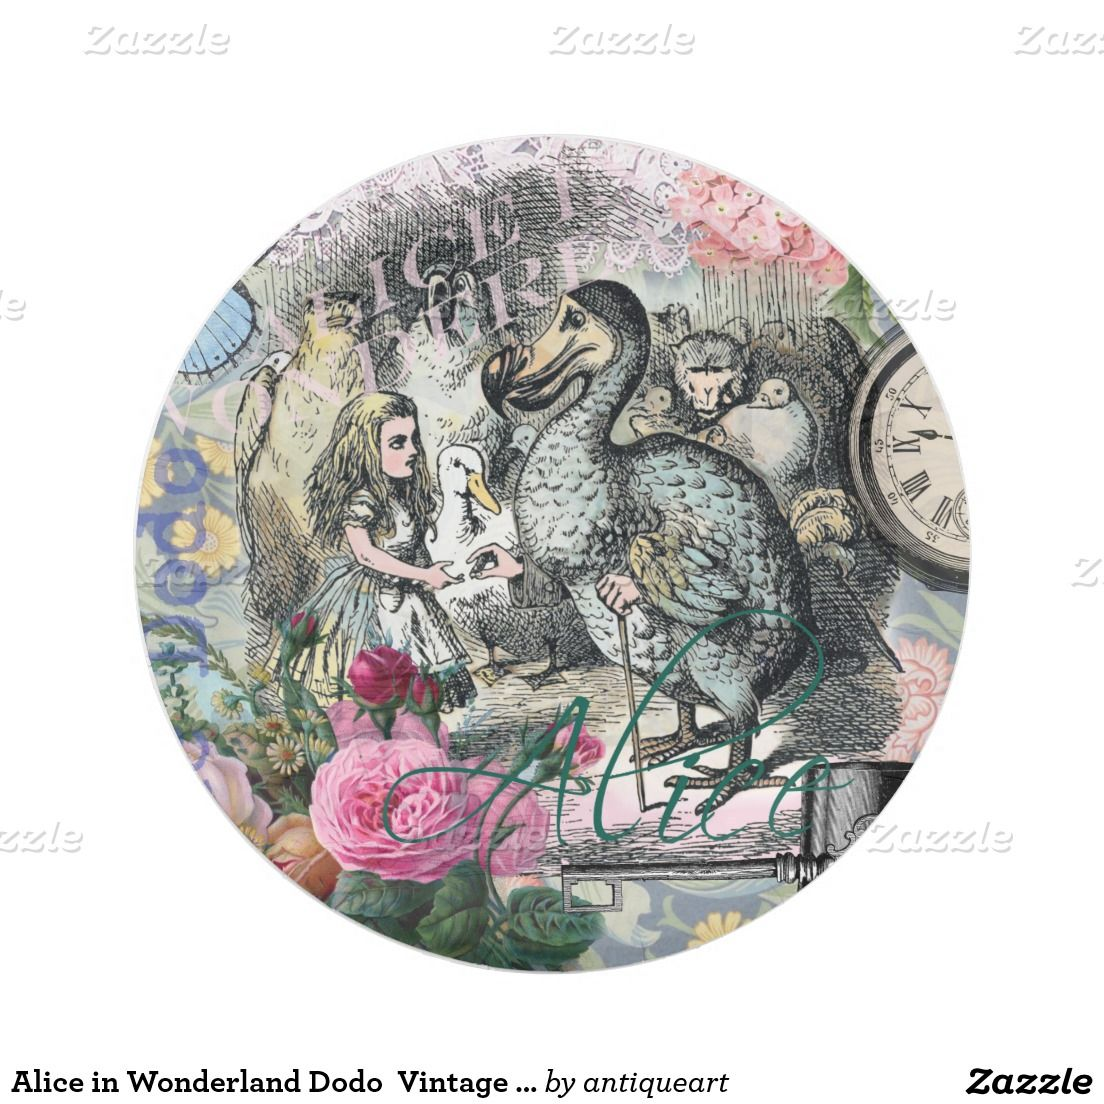 Alice in Wonderland Dodo Vintage Pretty Collage 7 Inch Paper Plate  sc 1 st  Pinterest & Alice in Wonderland Dodo Vintage Pretty Collage 7 Inch Paper Plate ...